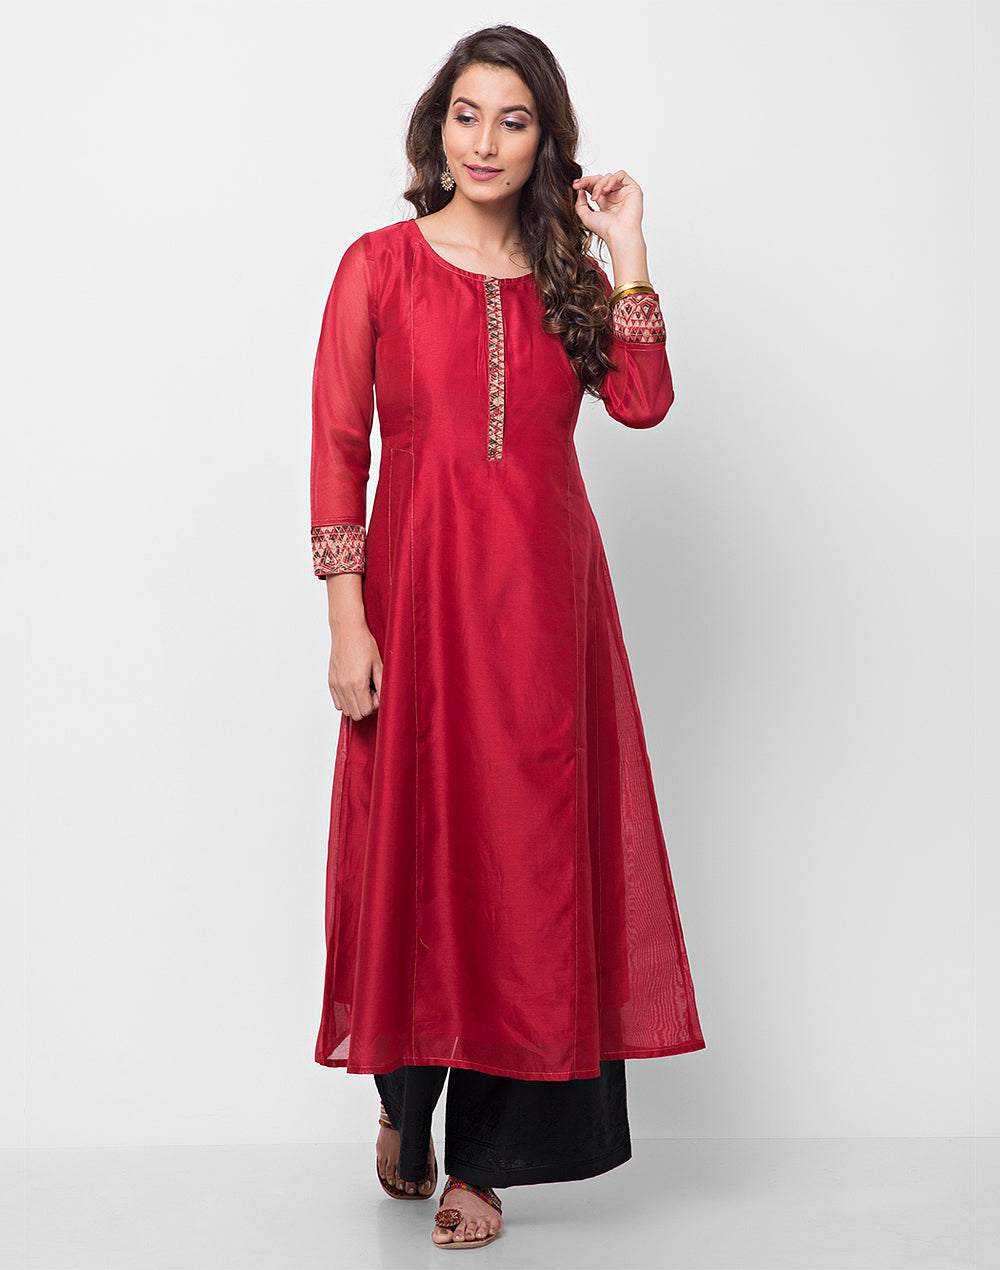 floor length-anarkali-anarkali-dress-anarkali online-cotton-anarkali kurtis-anarkali kurti-long anarkali-anarkali designs-cotton anarkali suits-floral anarkali-cotton-anarkali-anarkali dresses-cotton anarkali-anarkali kurta